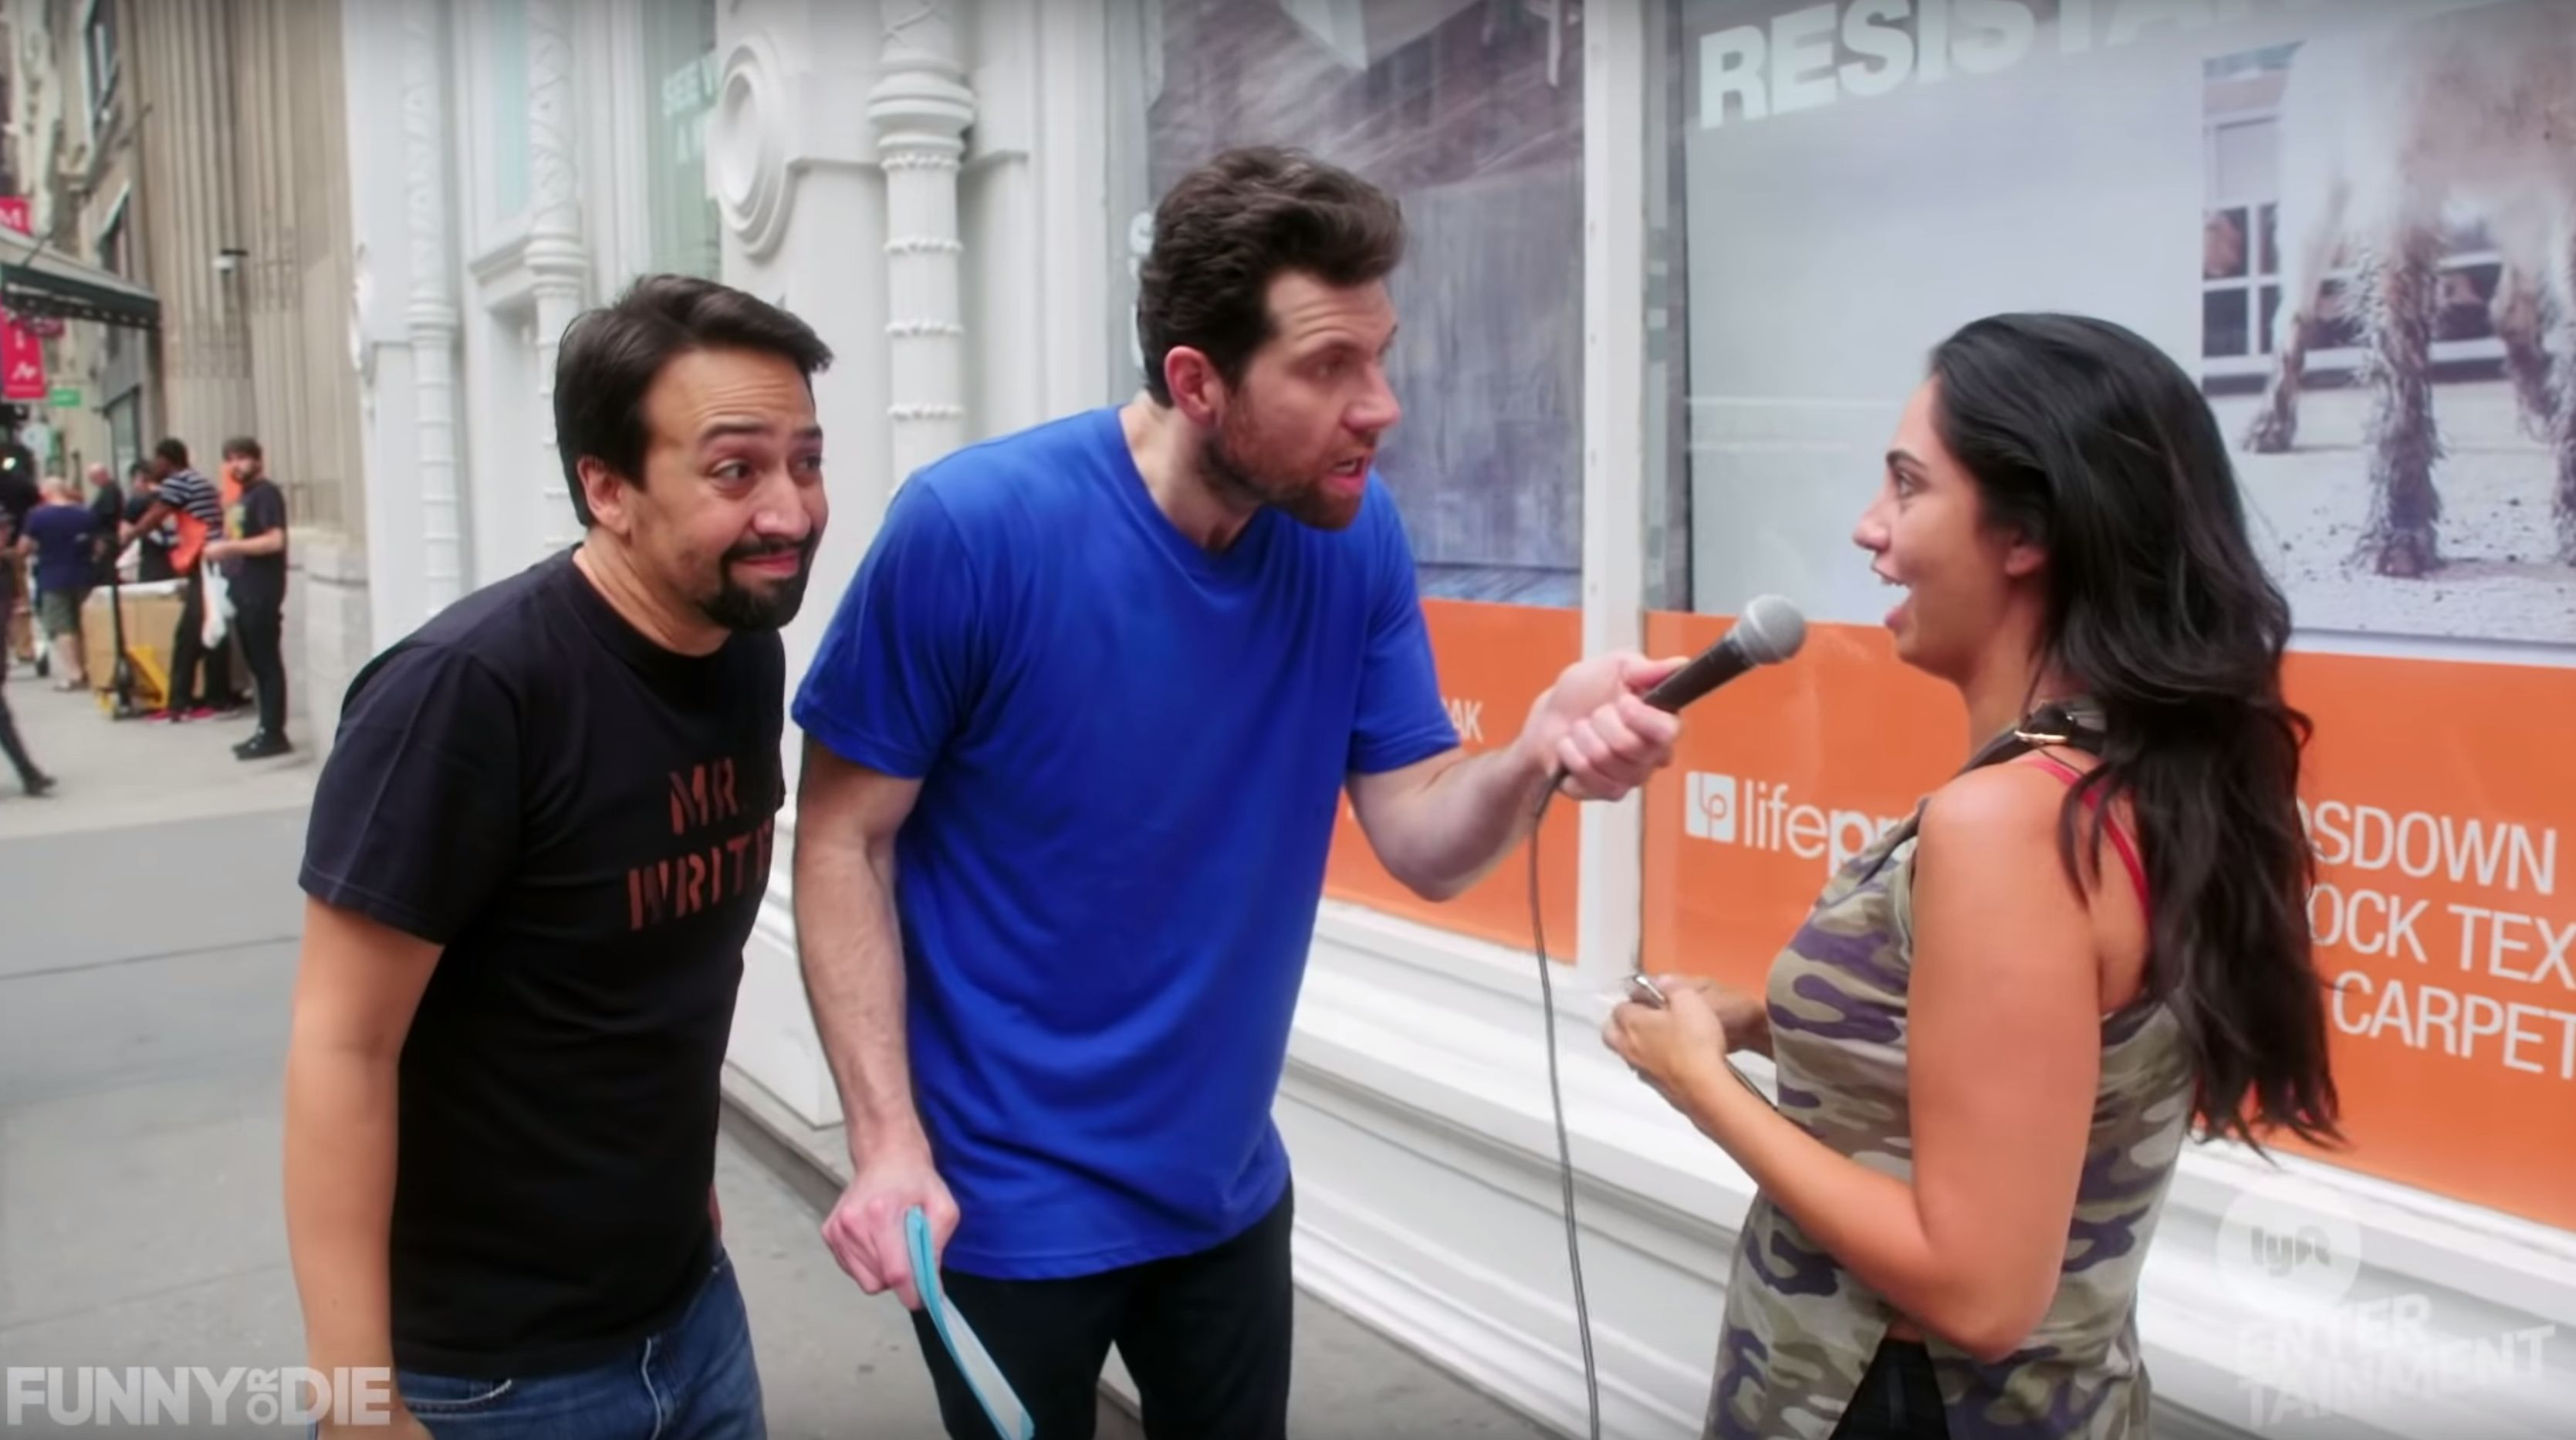 Billy Eichner and Lin-Manuel Miranda walk around the streets of NYC asking people if they're happy.